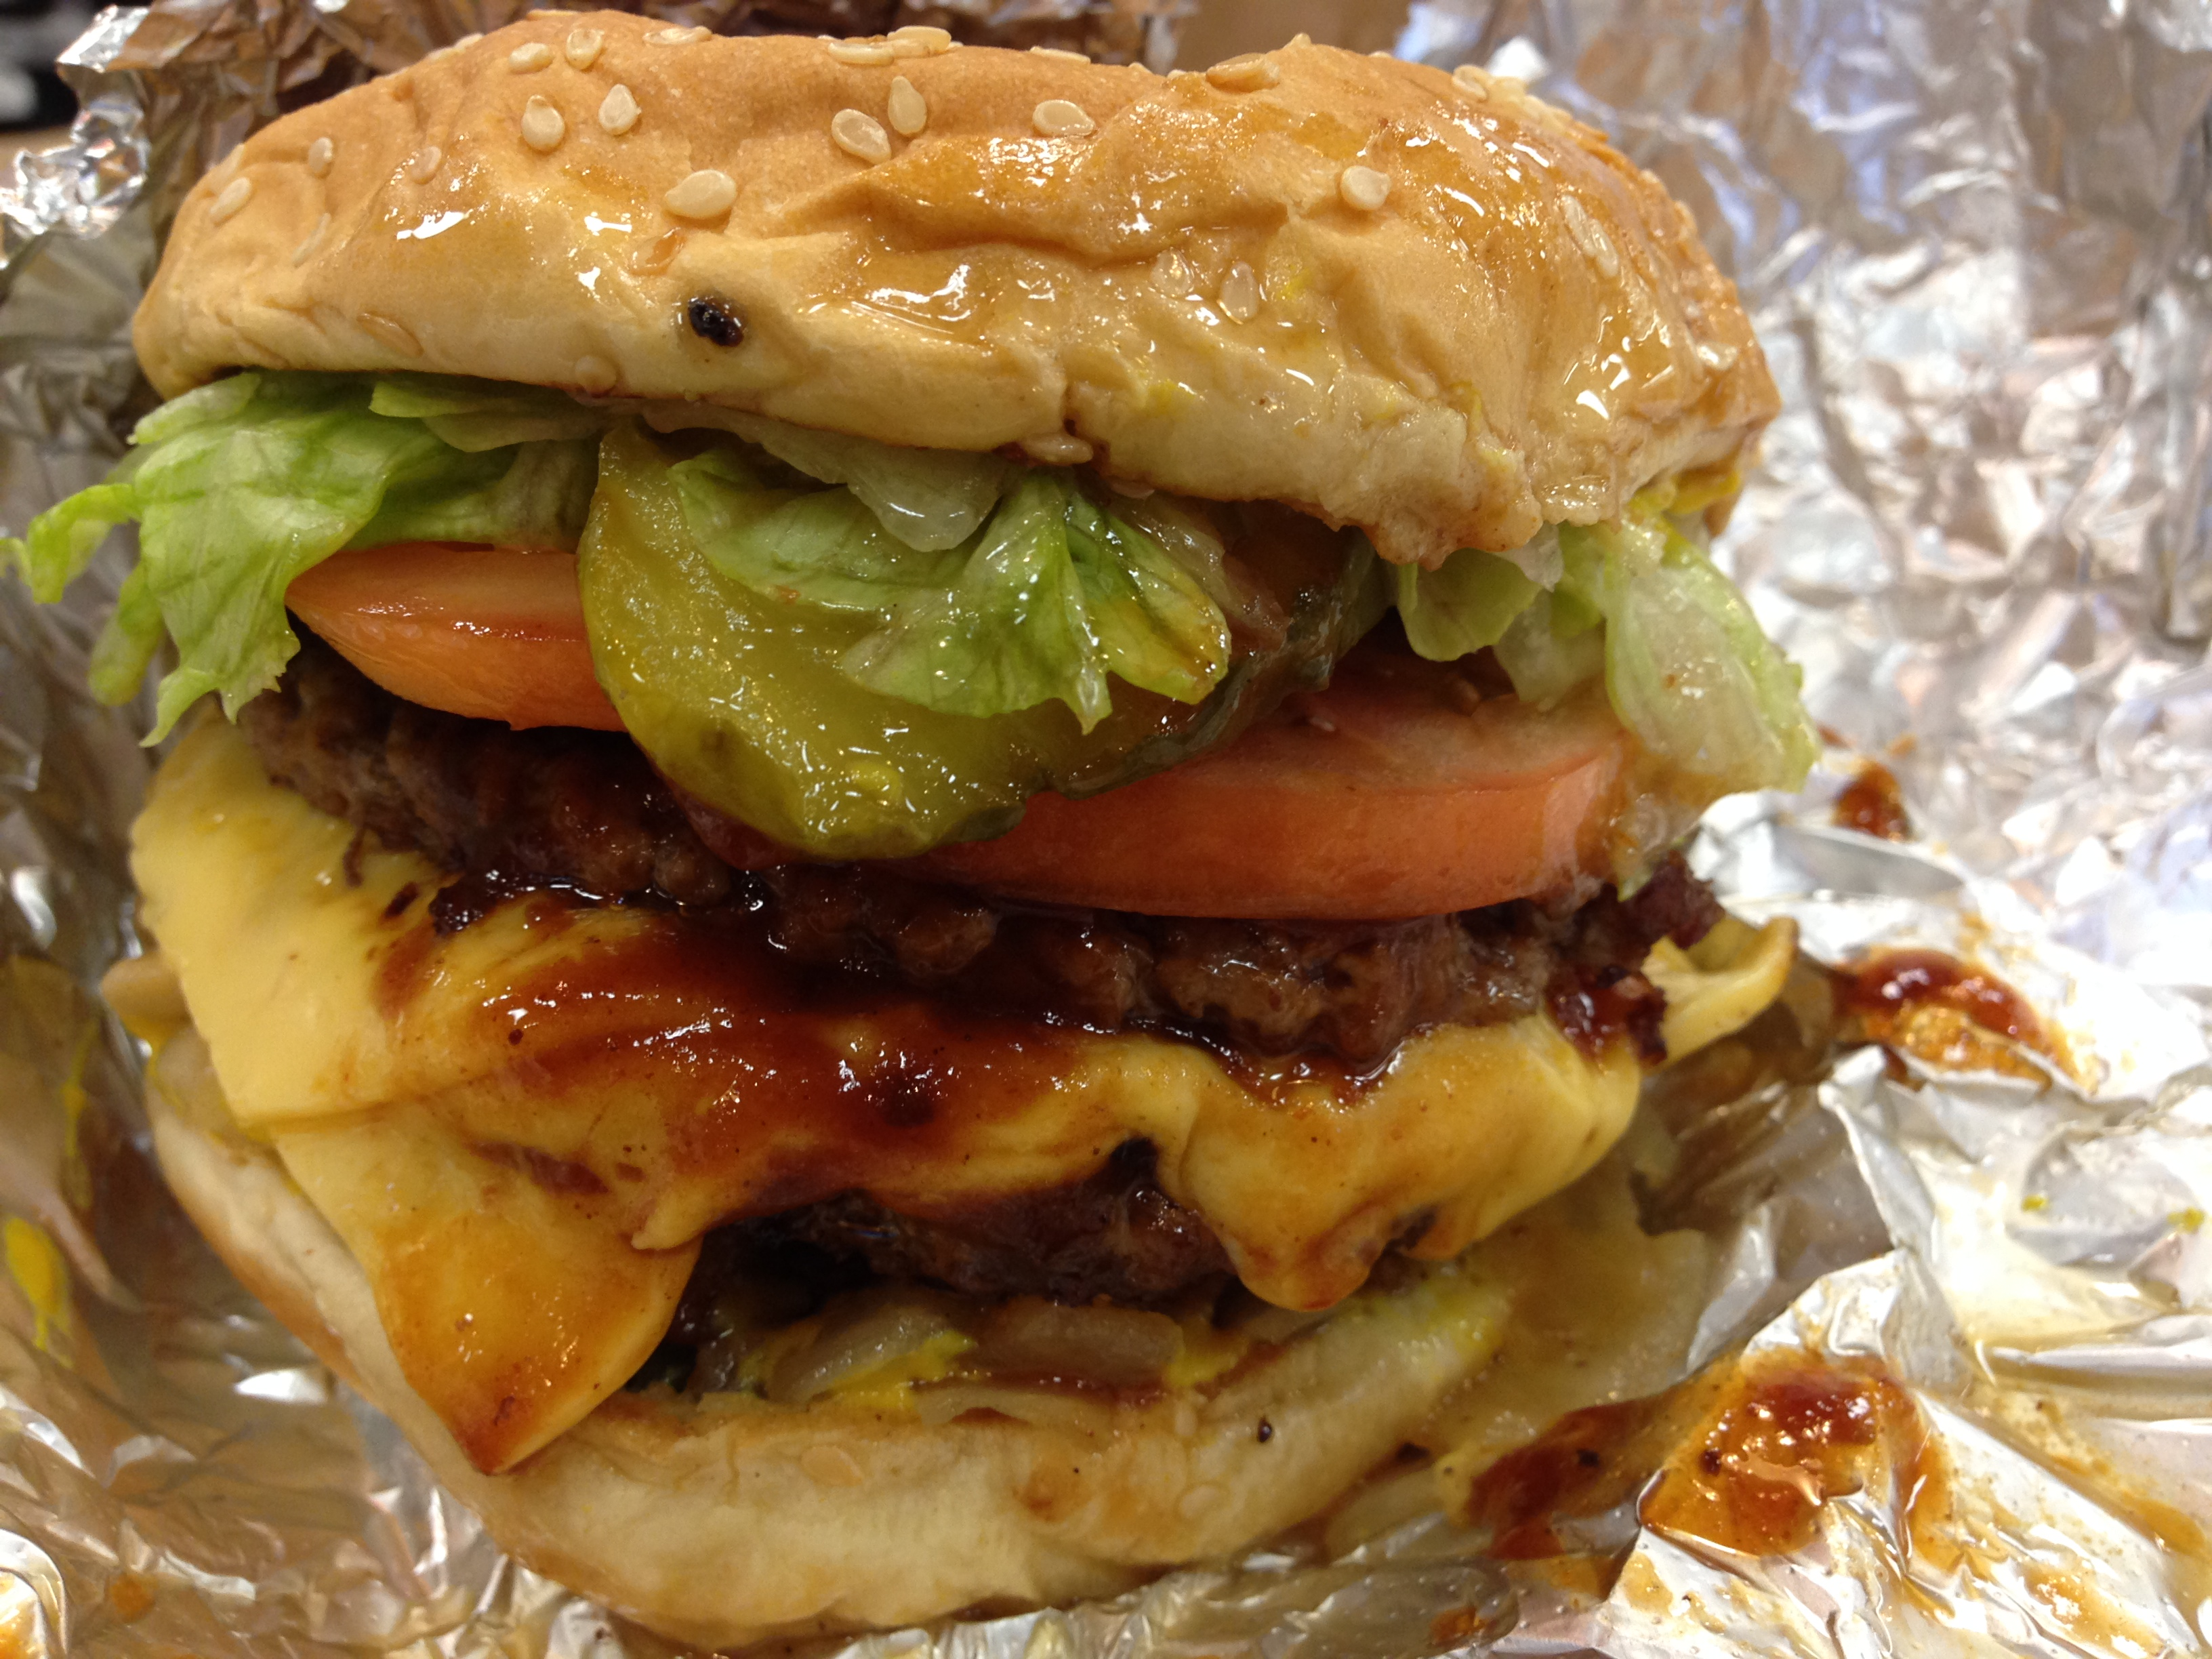 Burger Friday | Four dudes eating and reviewing burgers ...